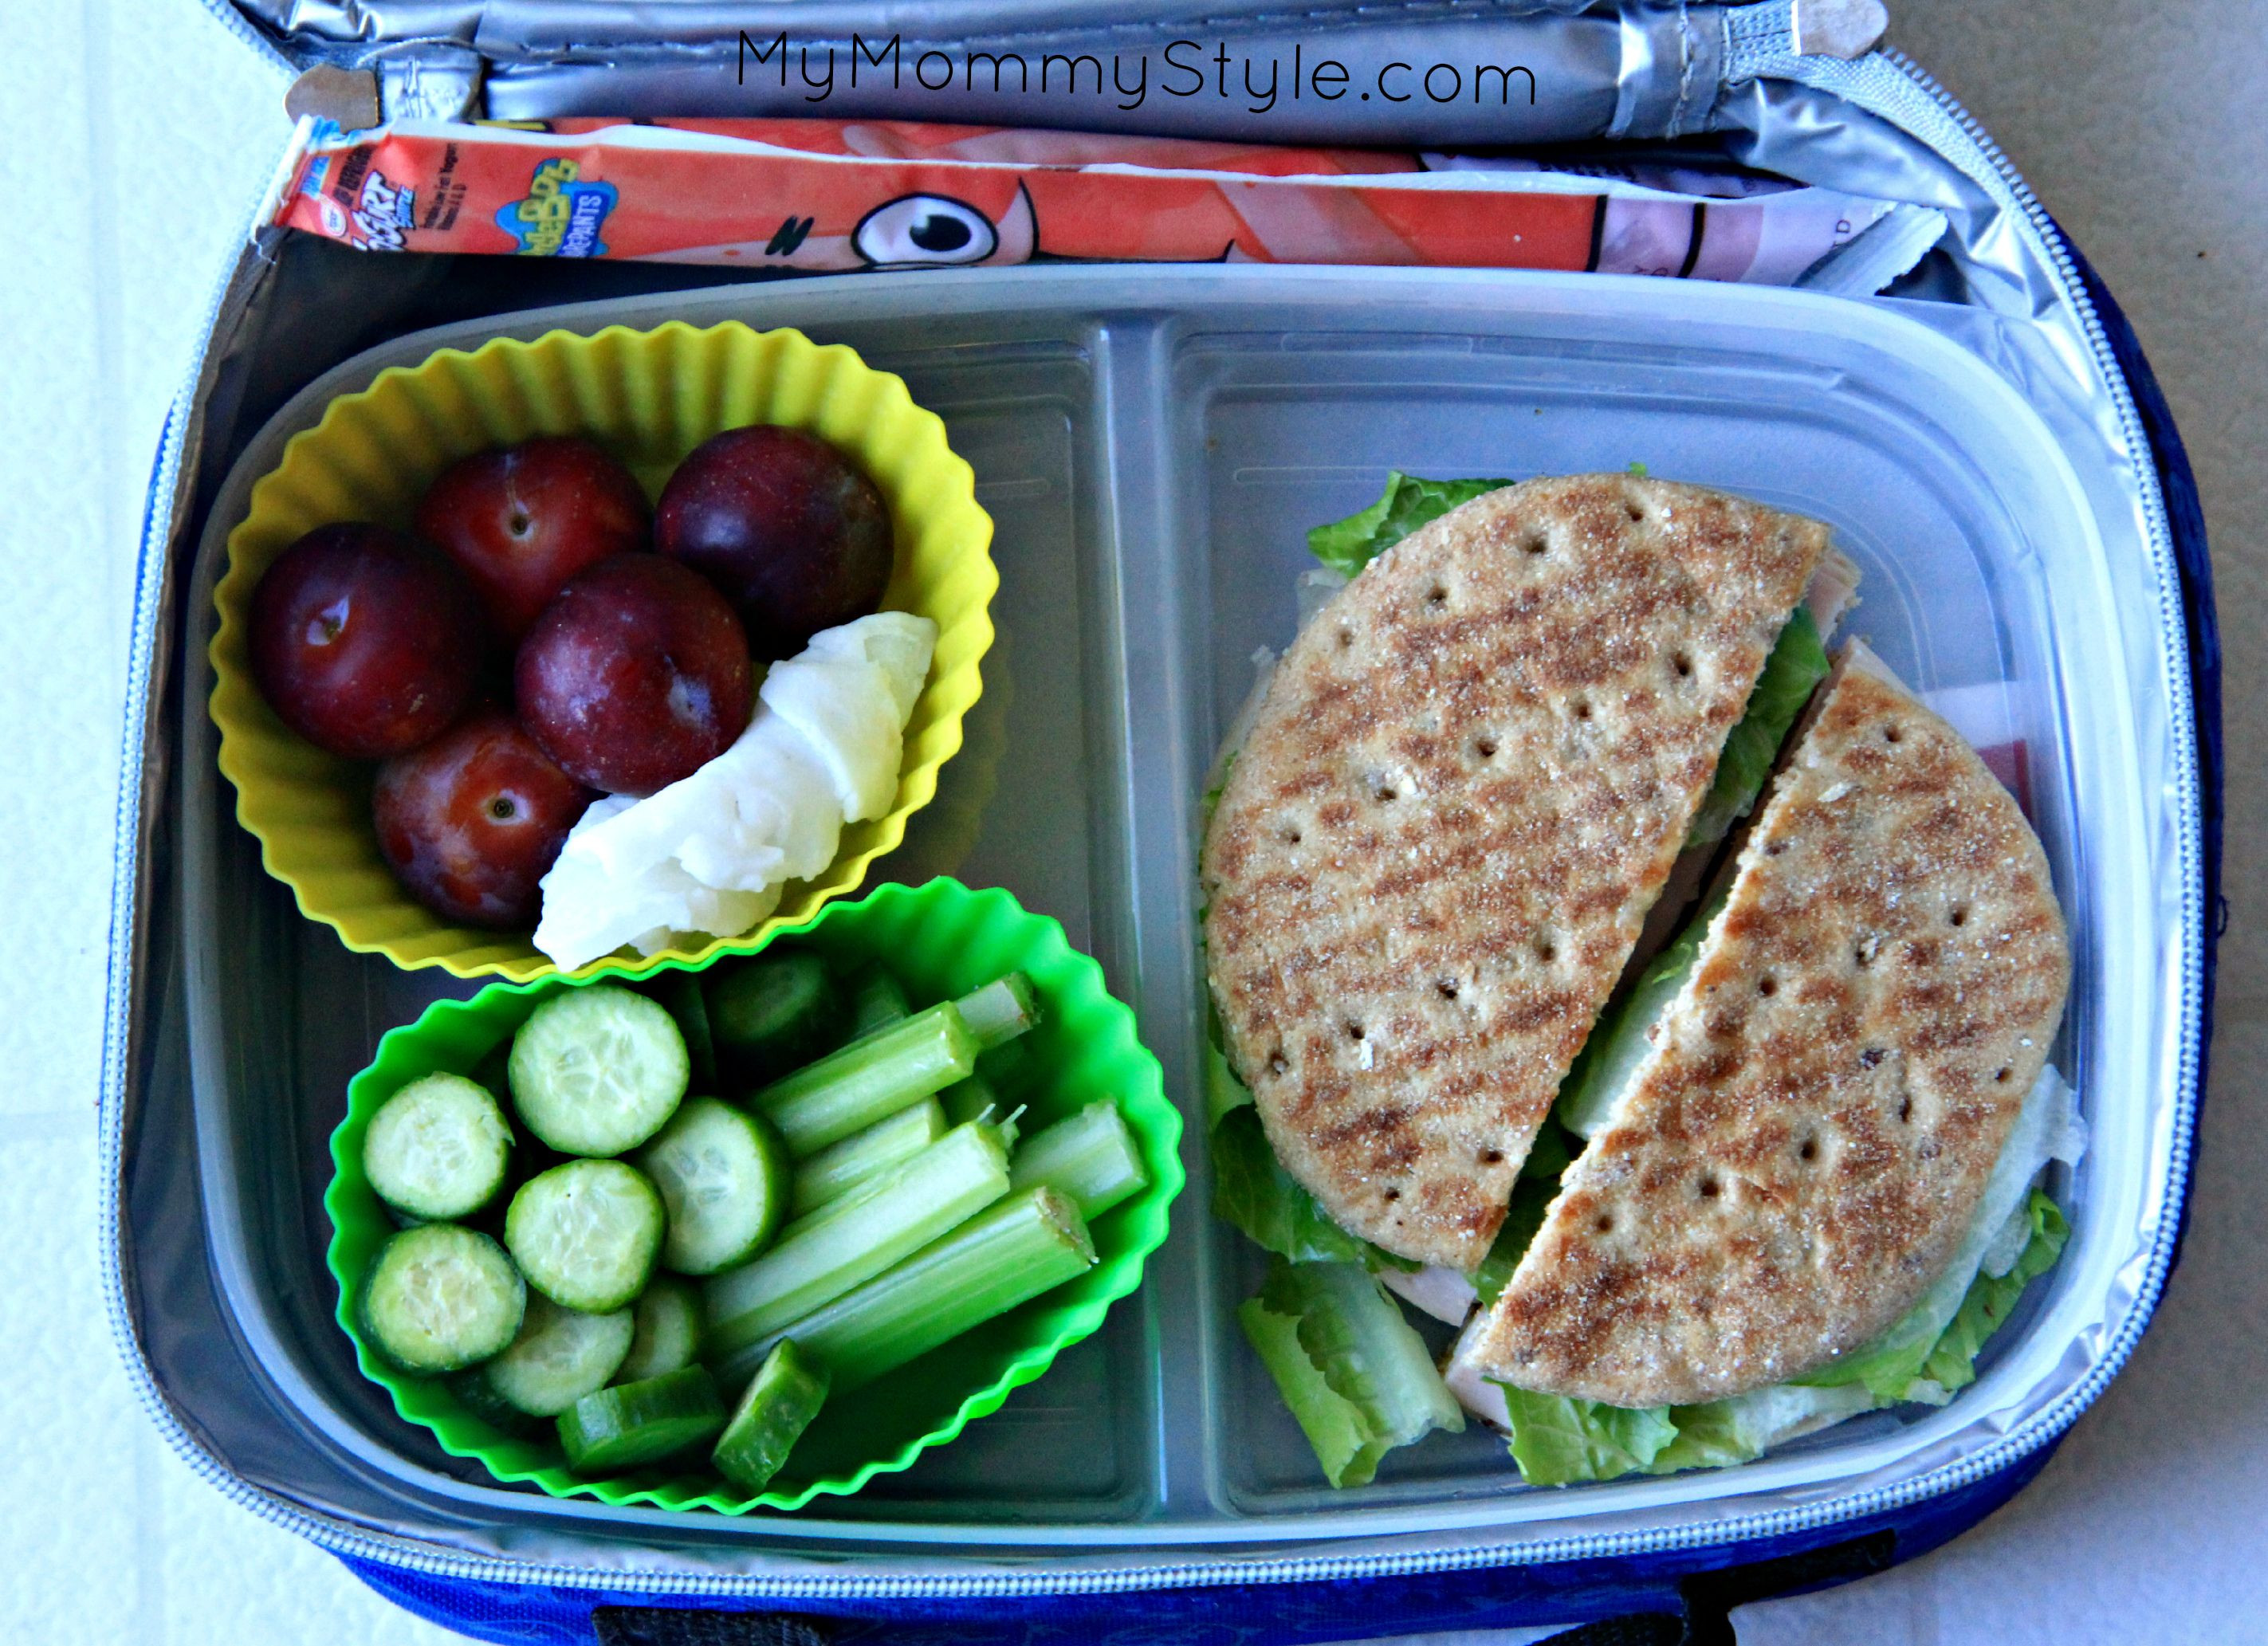 Healthy School Lunches For Teens  healthy school lunches for teens